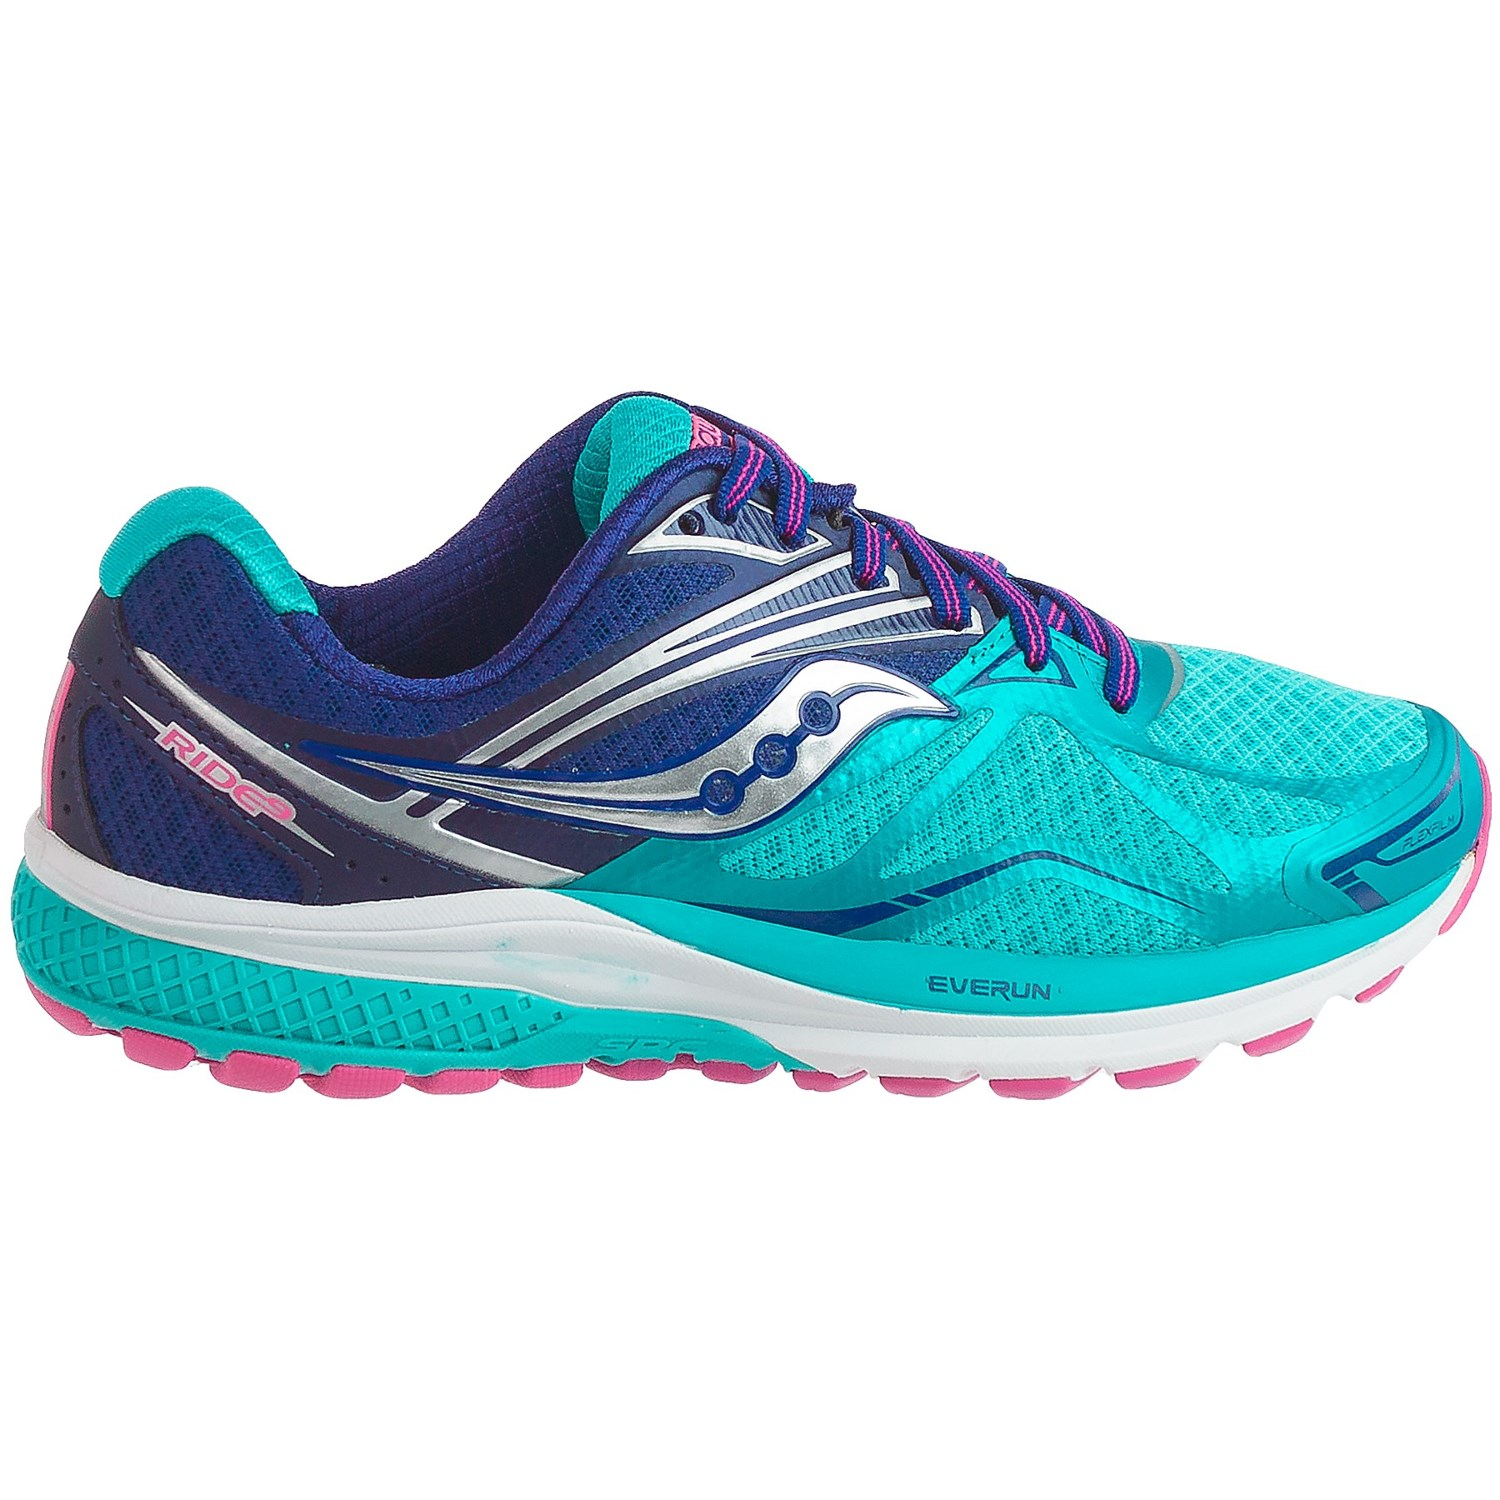 saucony running shoes saucony ride 9 running shoes (for women) YVJBGBV